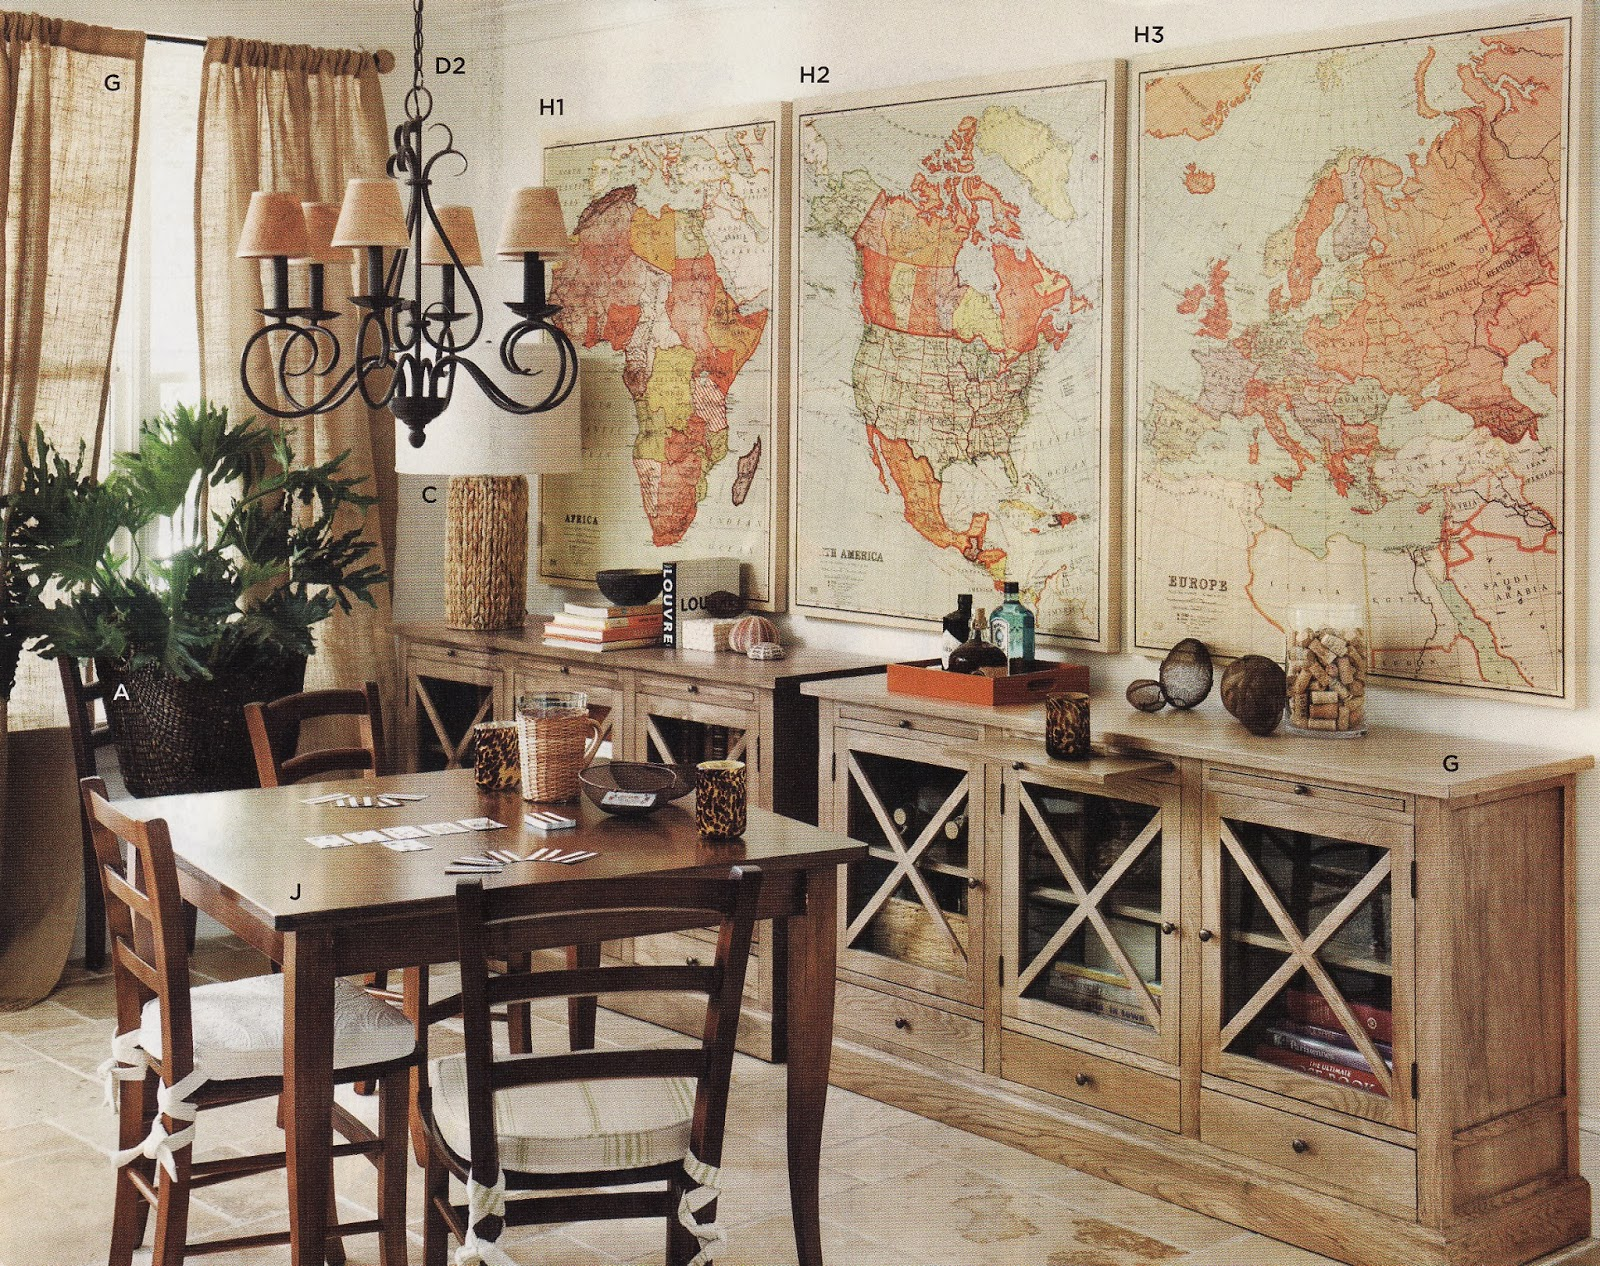 Creative juices decor oh for the love of maps home for Home and decor ideas